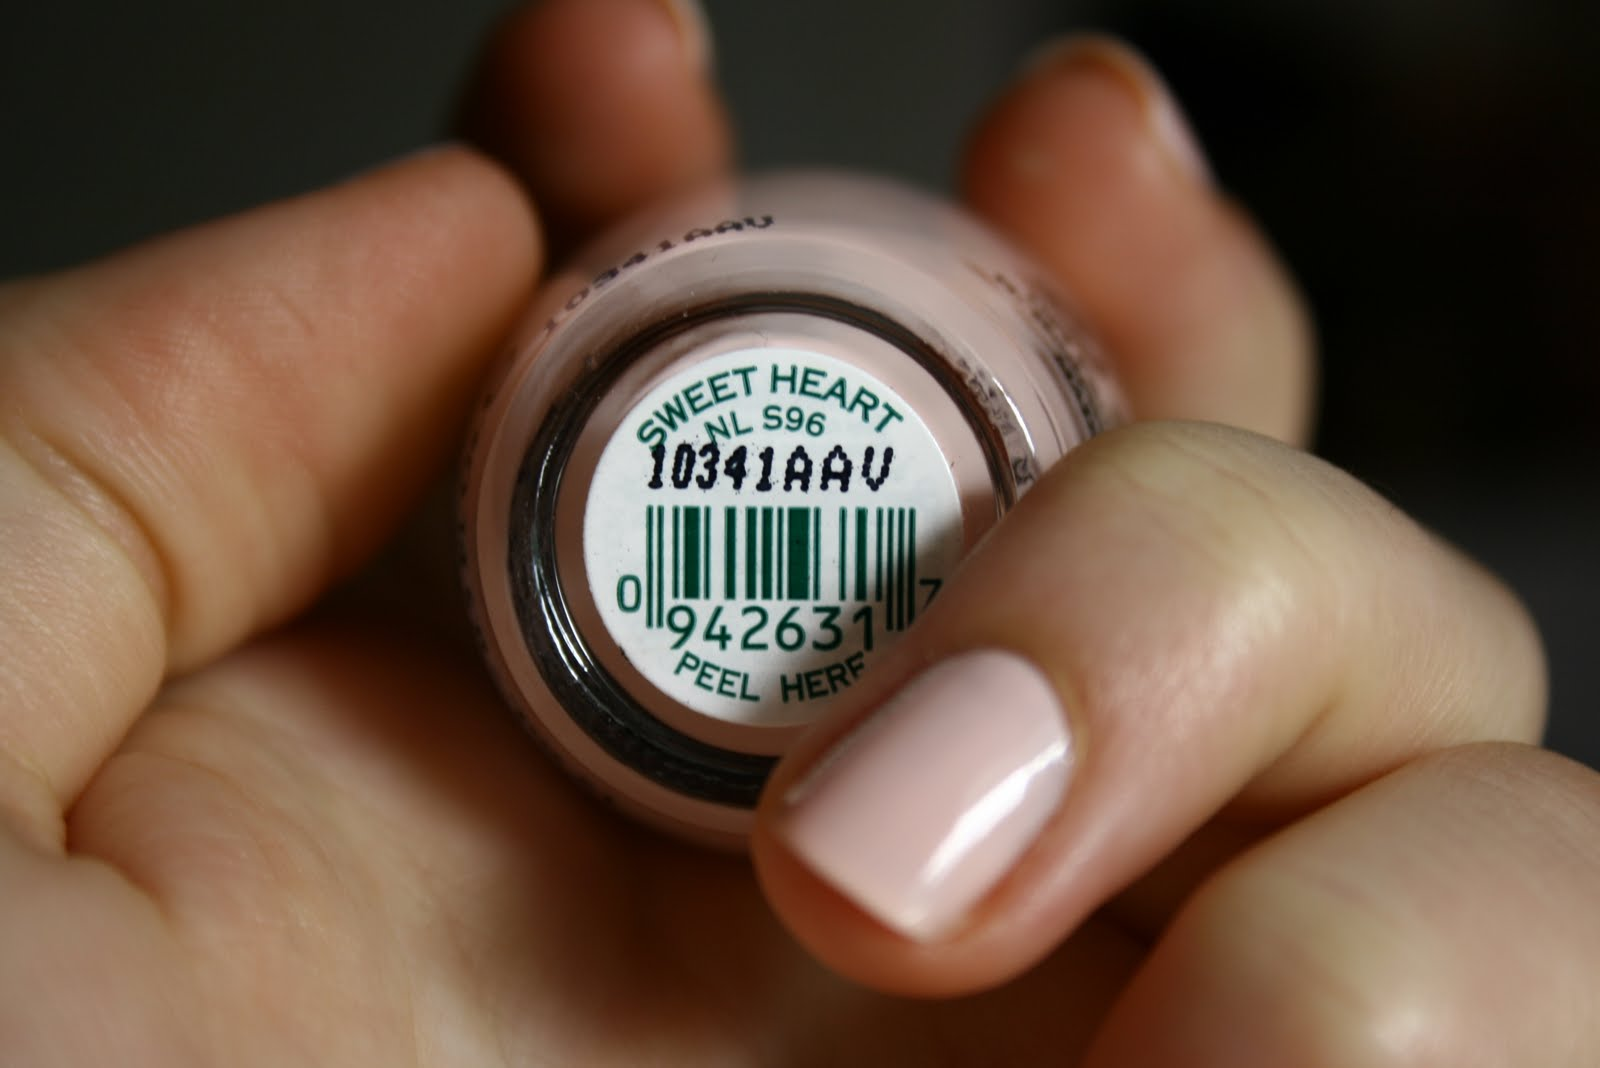 Top FOCUS ON THE QUIET: OPI Sweet Heart nail polish WW49